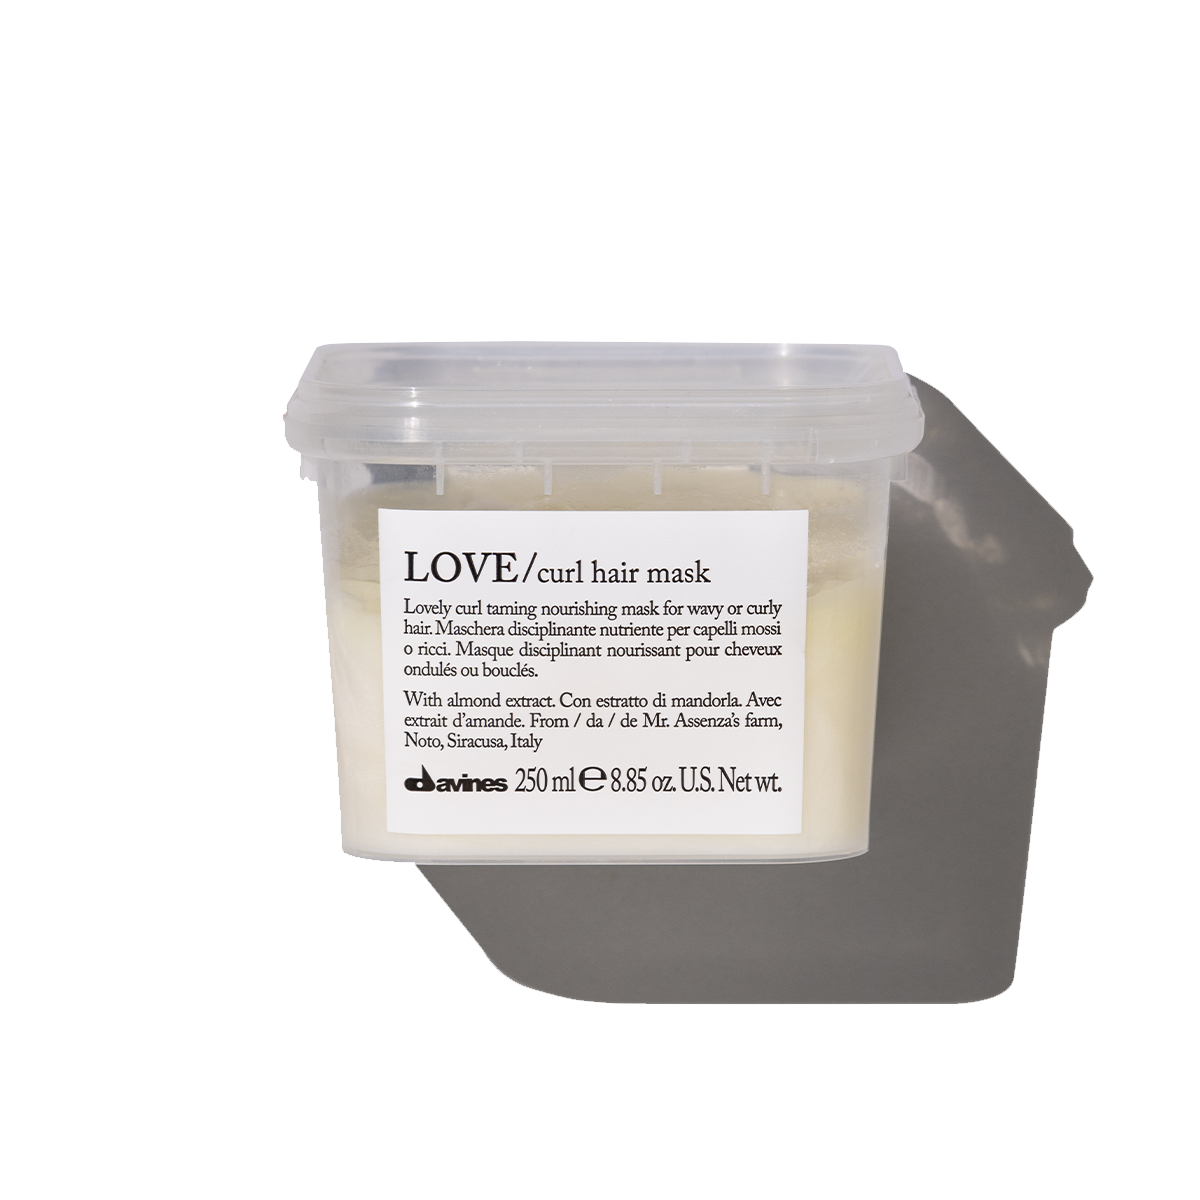 LOVE CURL Hair Mask by Davines